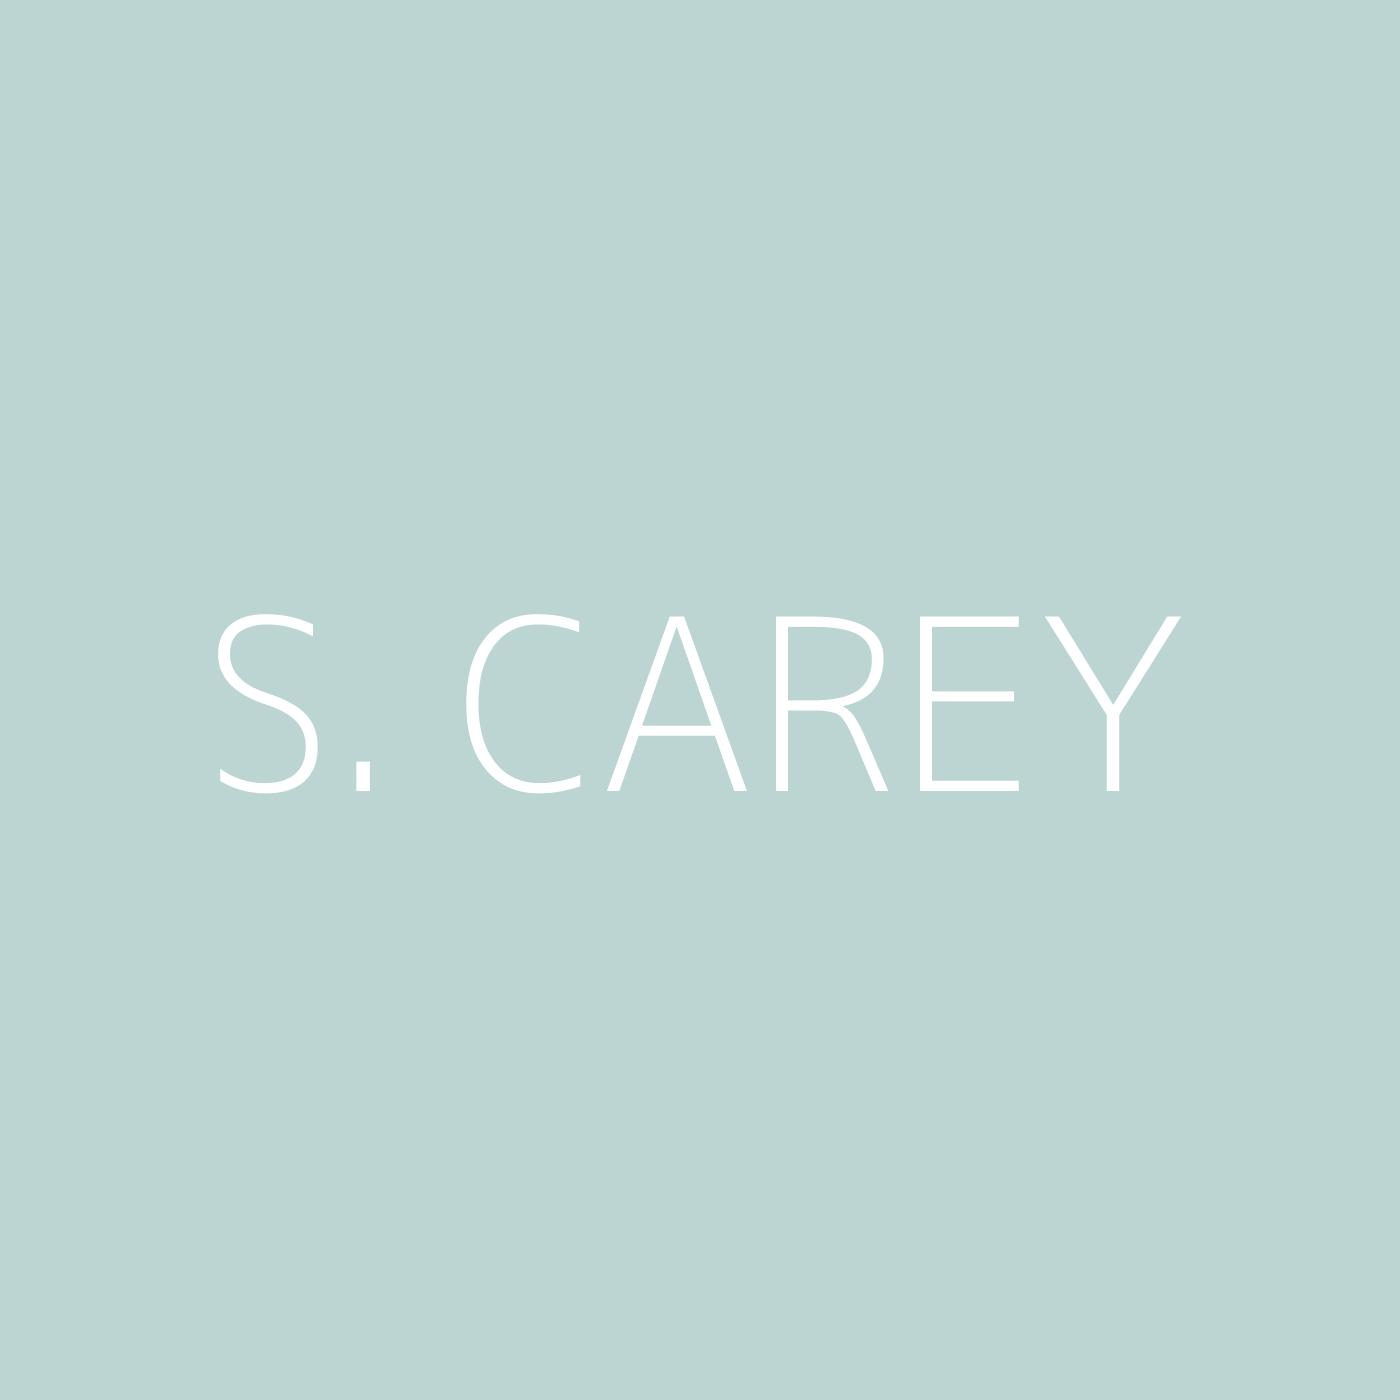 S. Carey Playlist Artwork